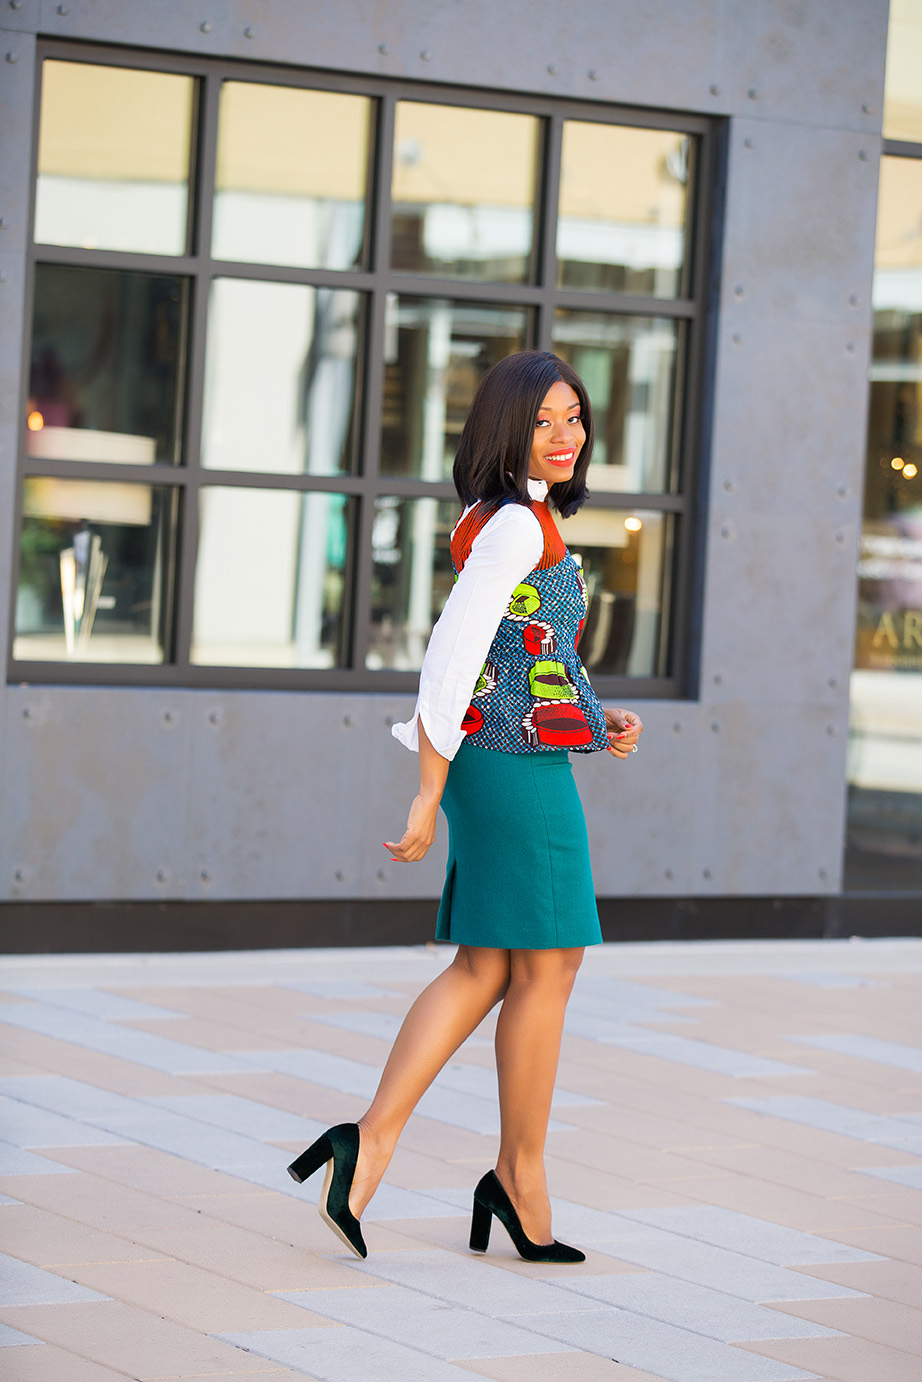 Jcrew pencil skirt and ankara peplum top, www.jadore-fashion.com